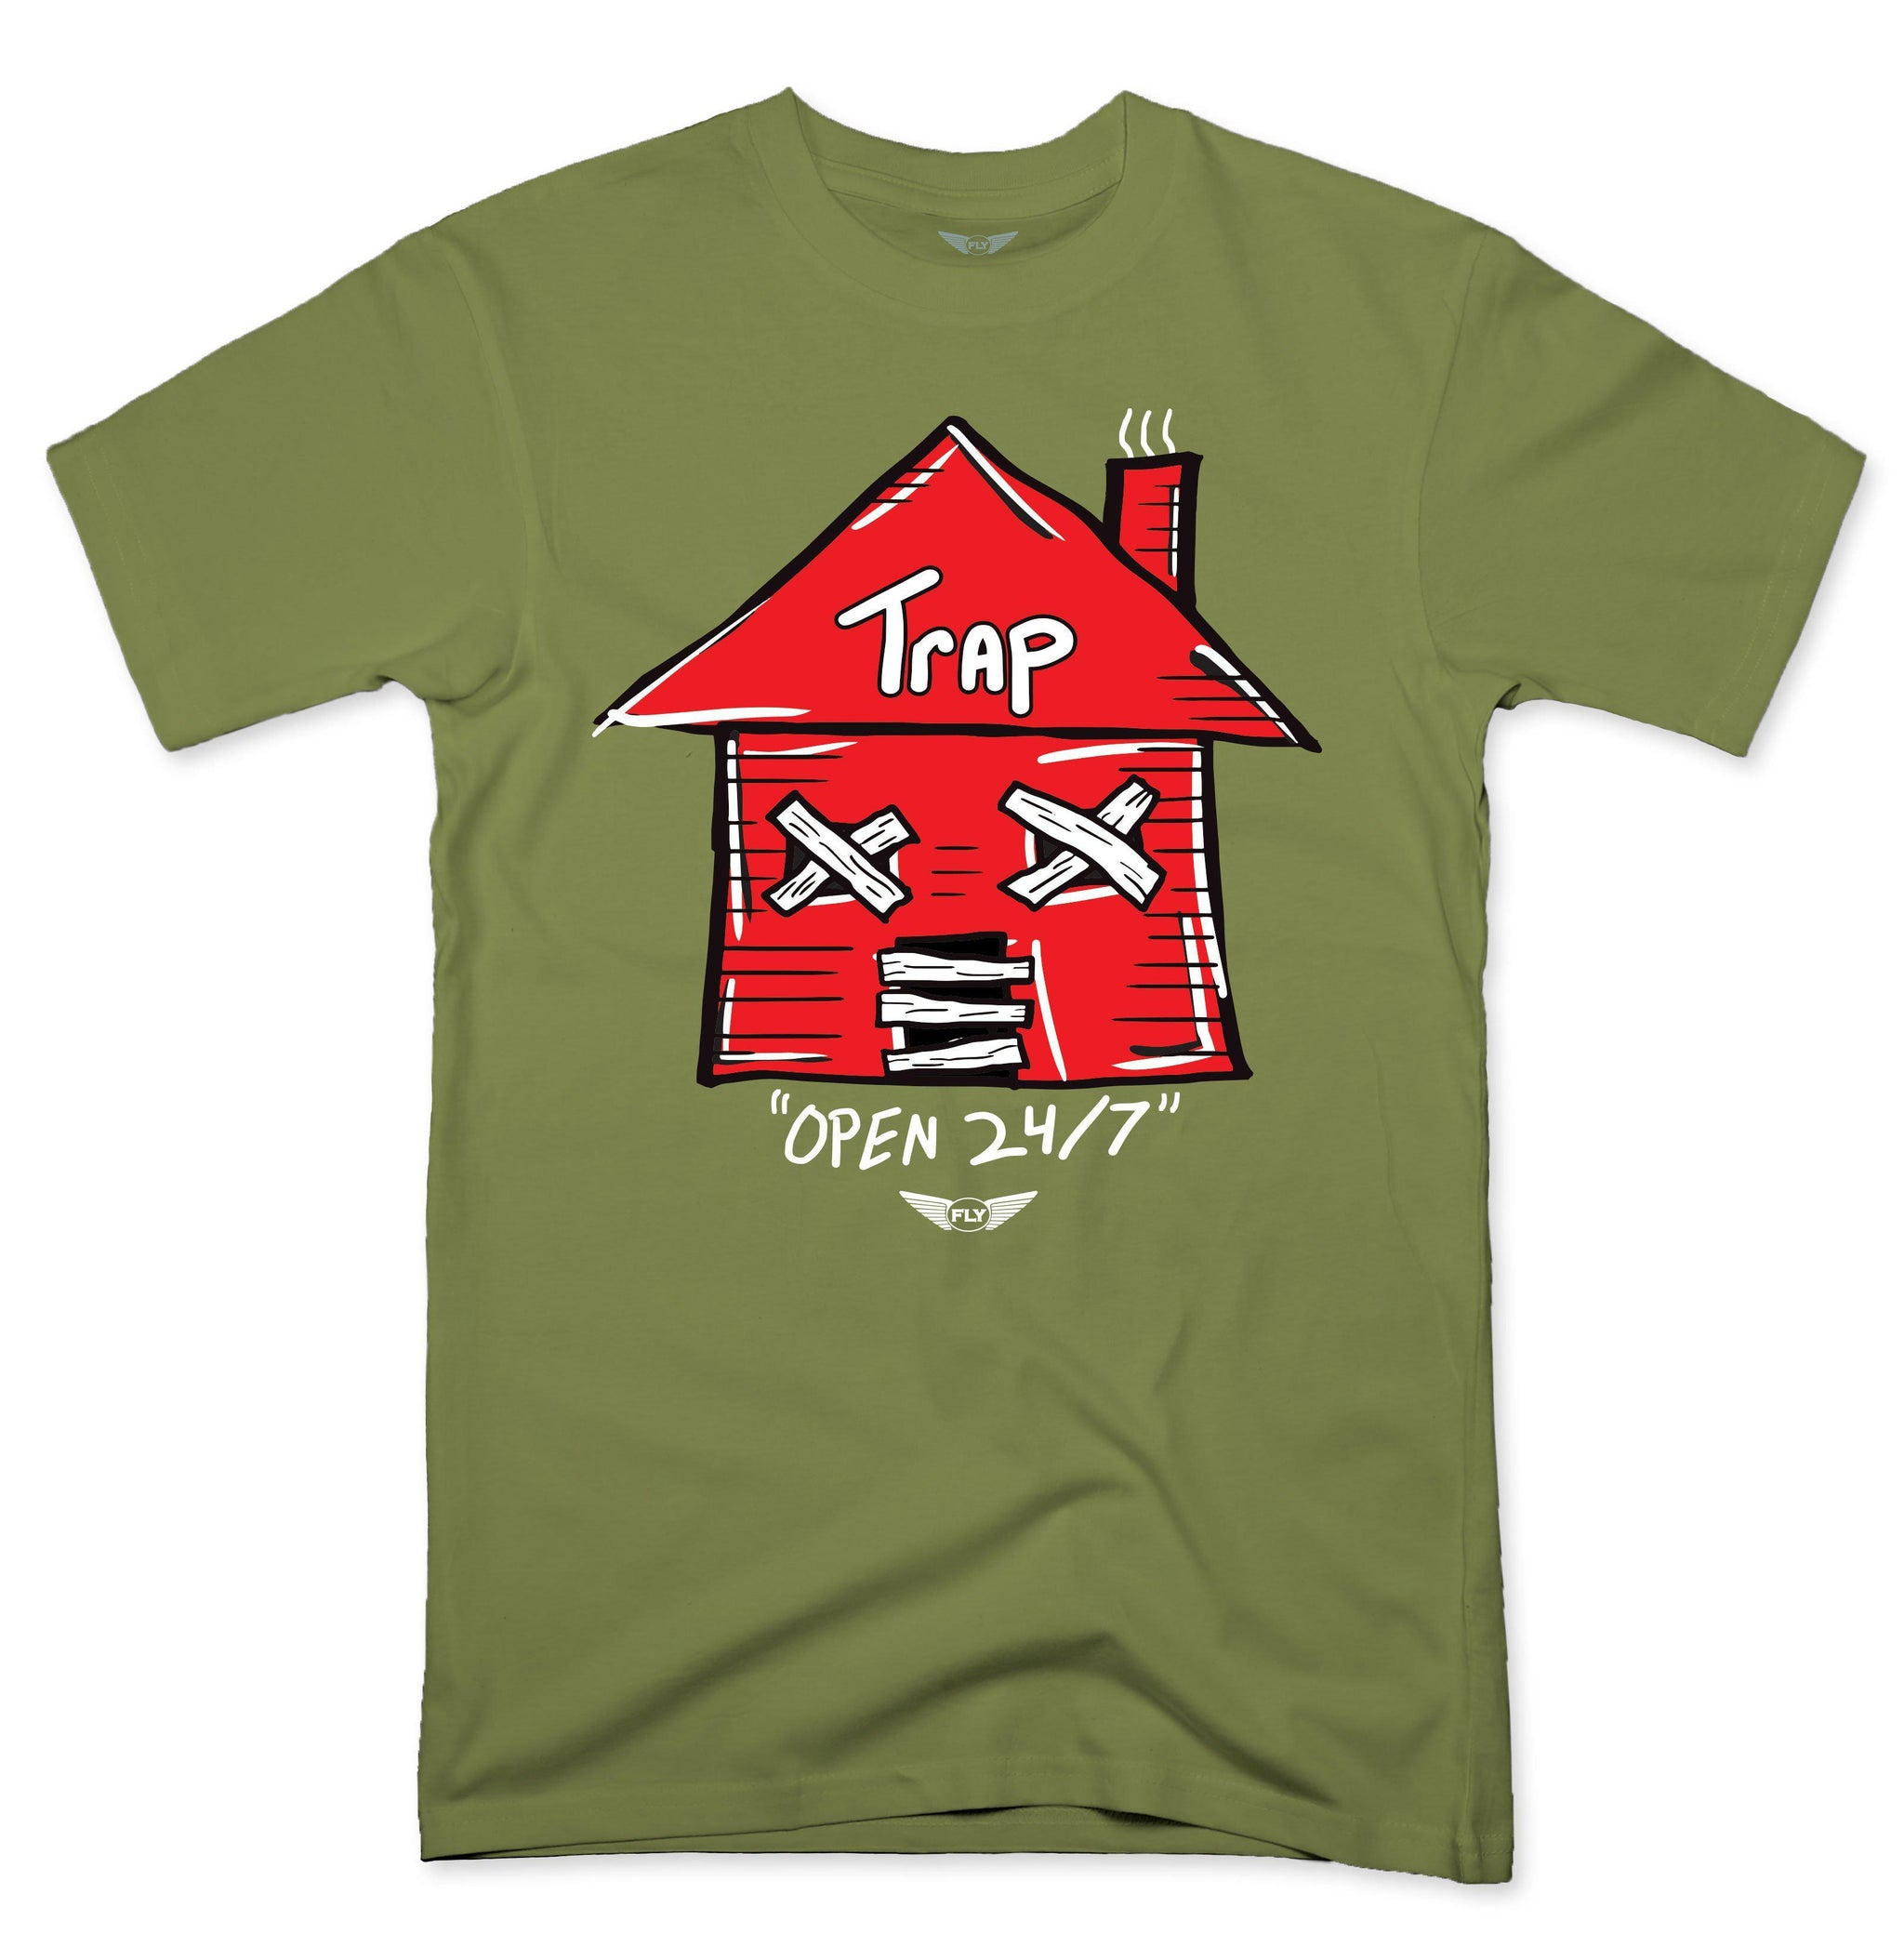 FLY - Trap Red Open 24/7 Tee